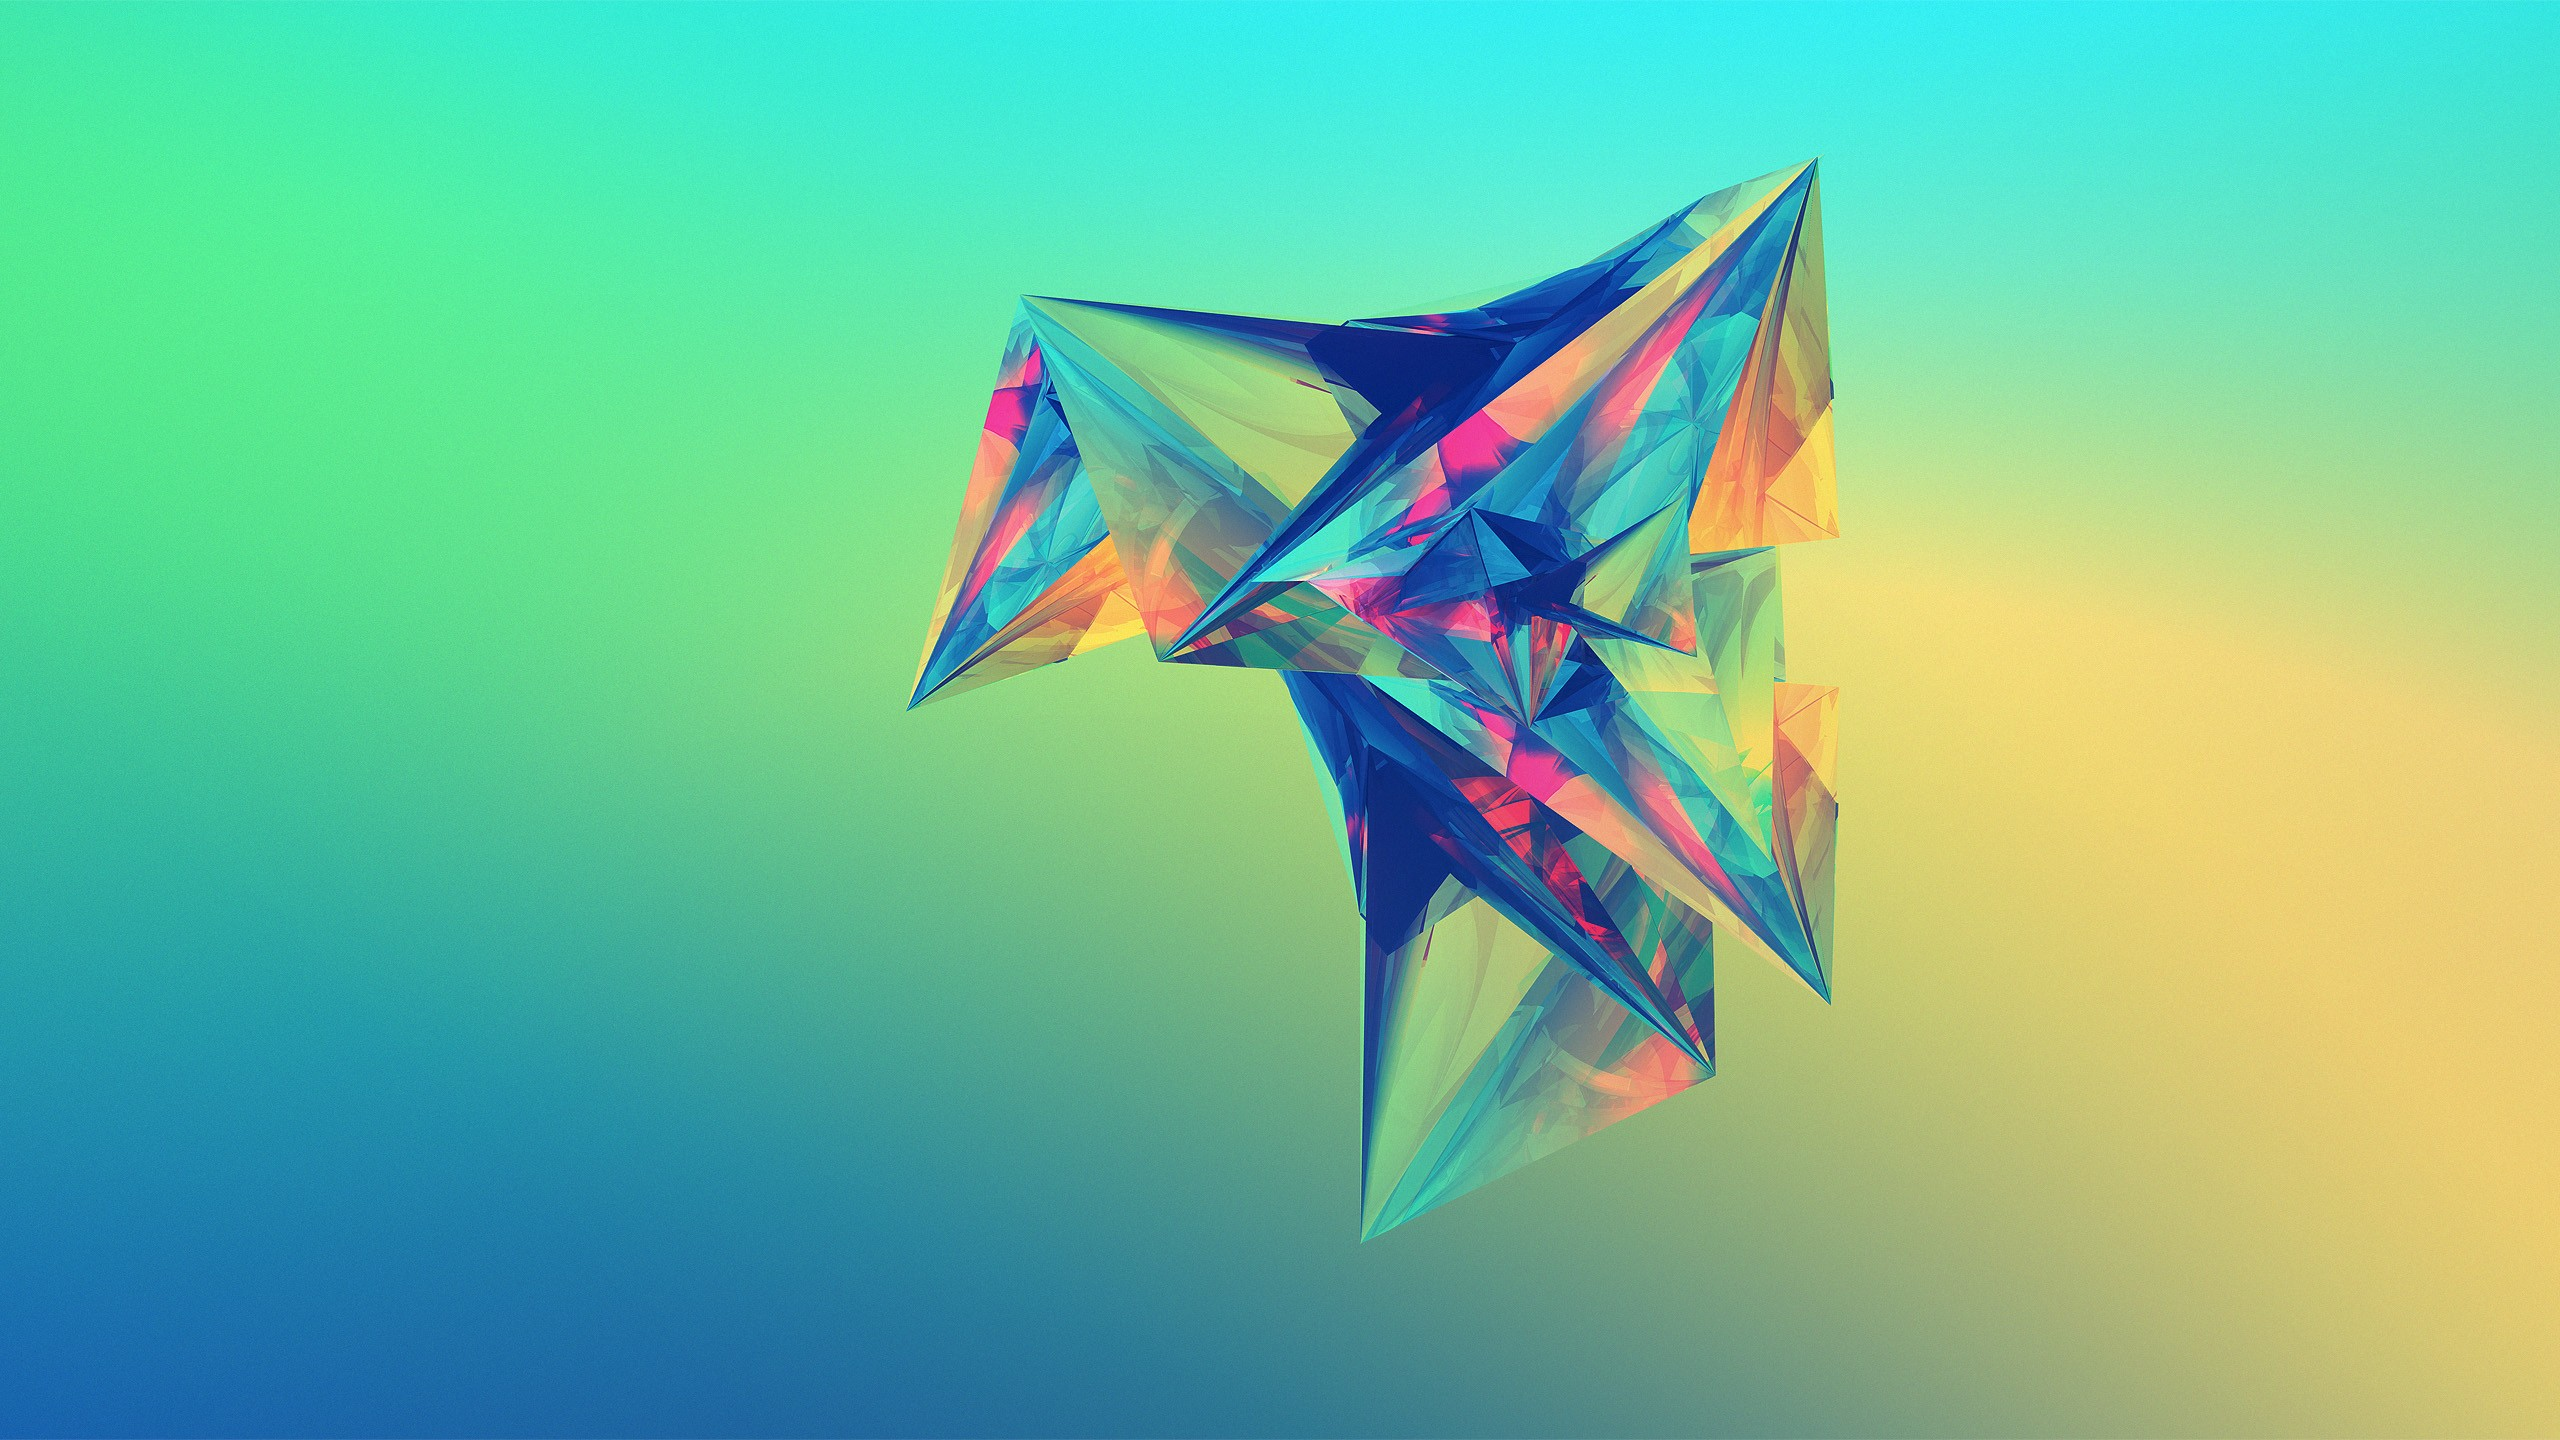 4k Abstract Design